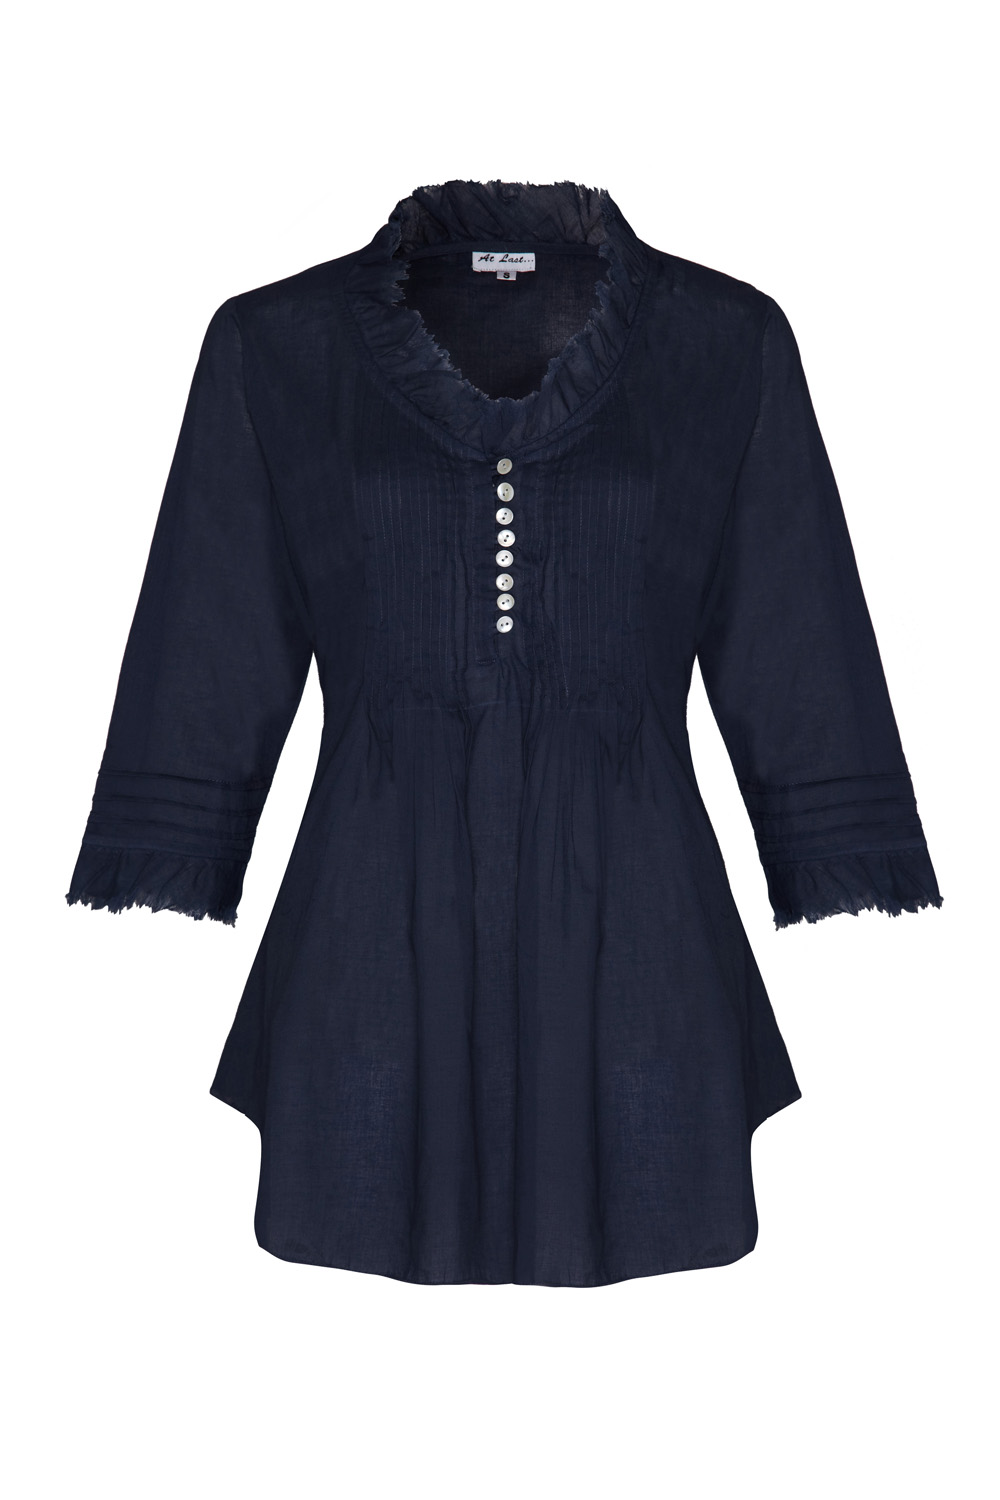 At Last Sophie - Navy